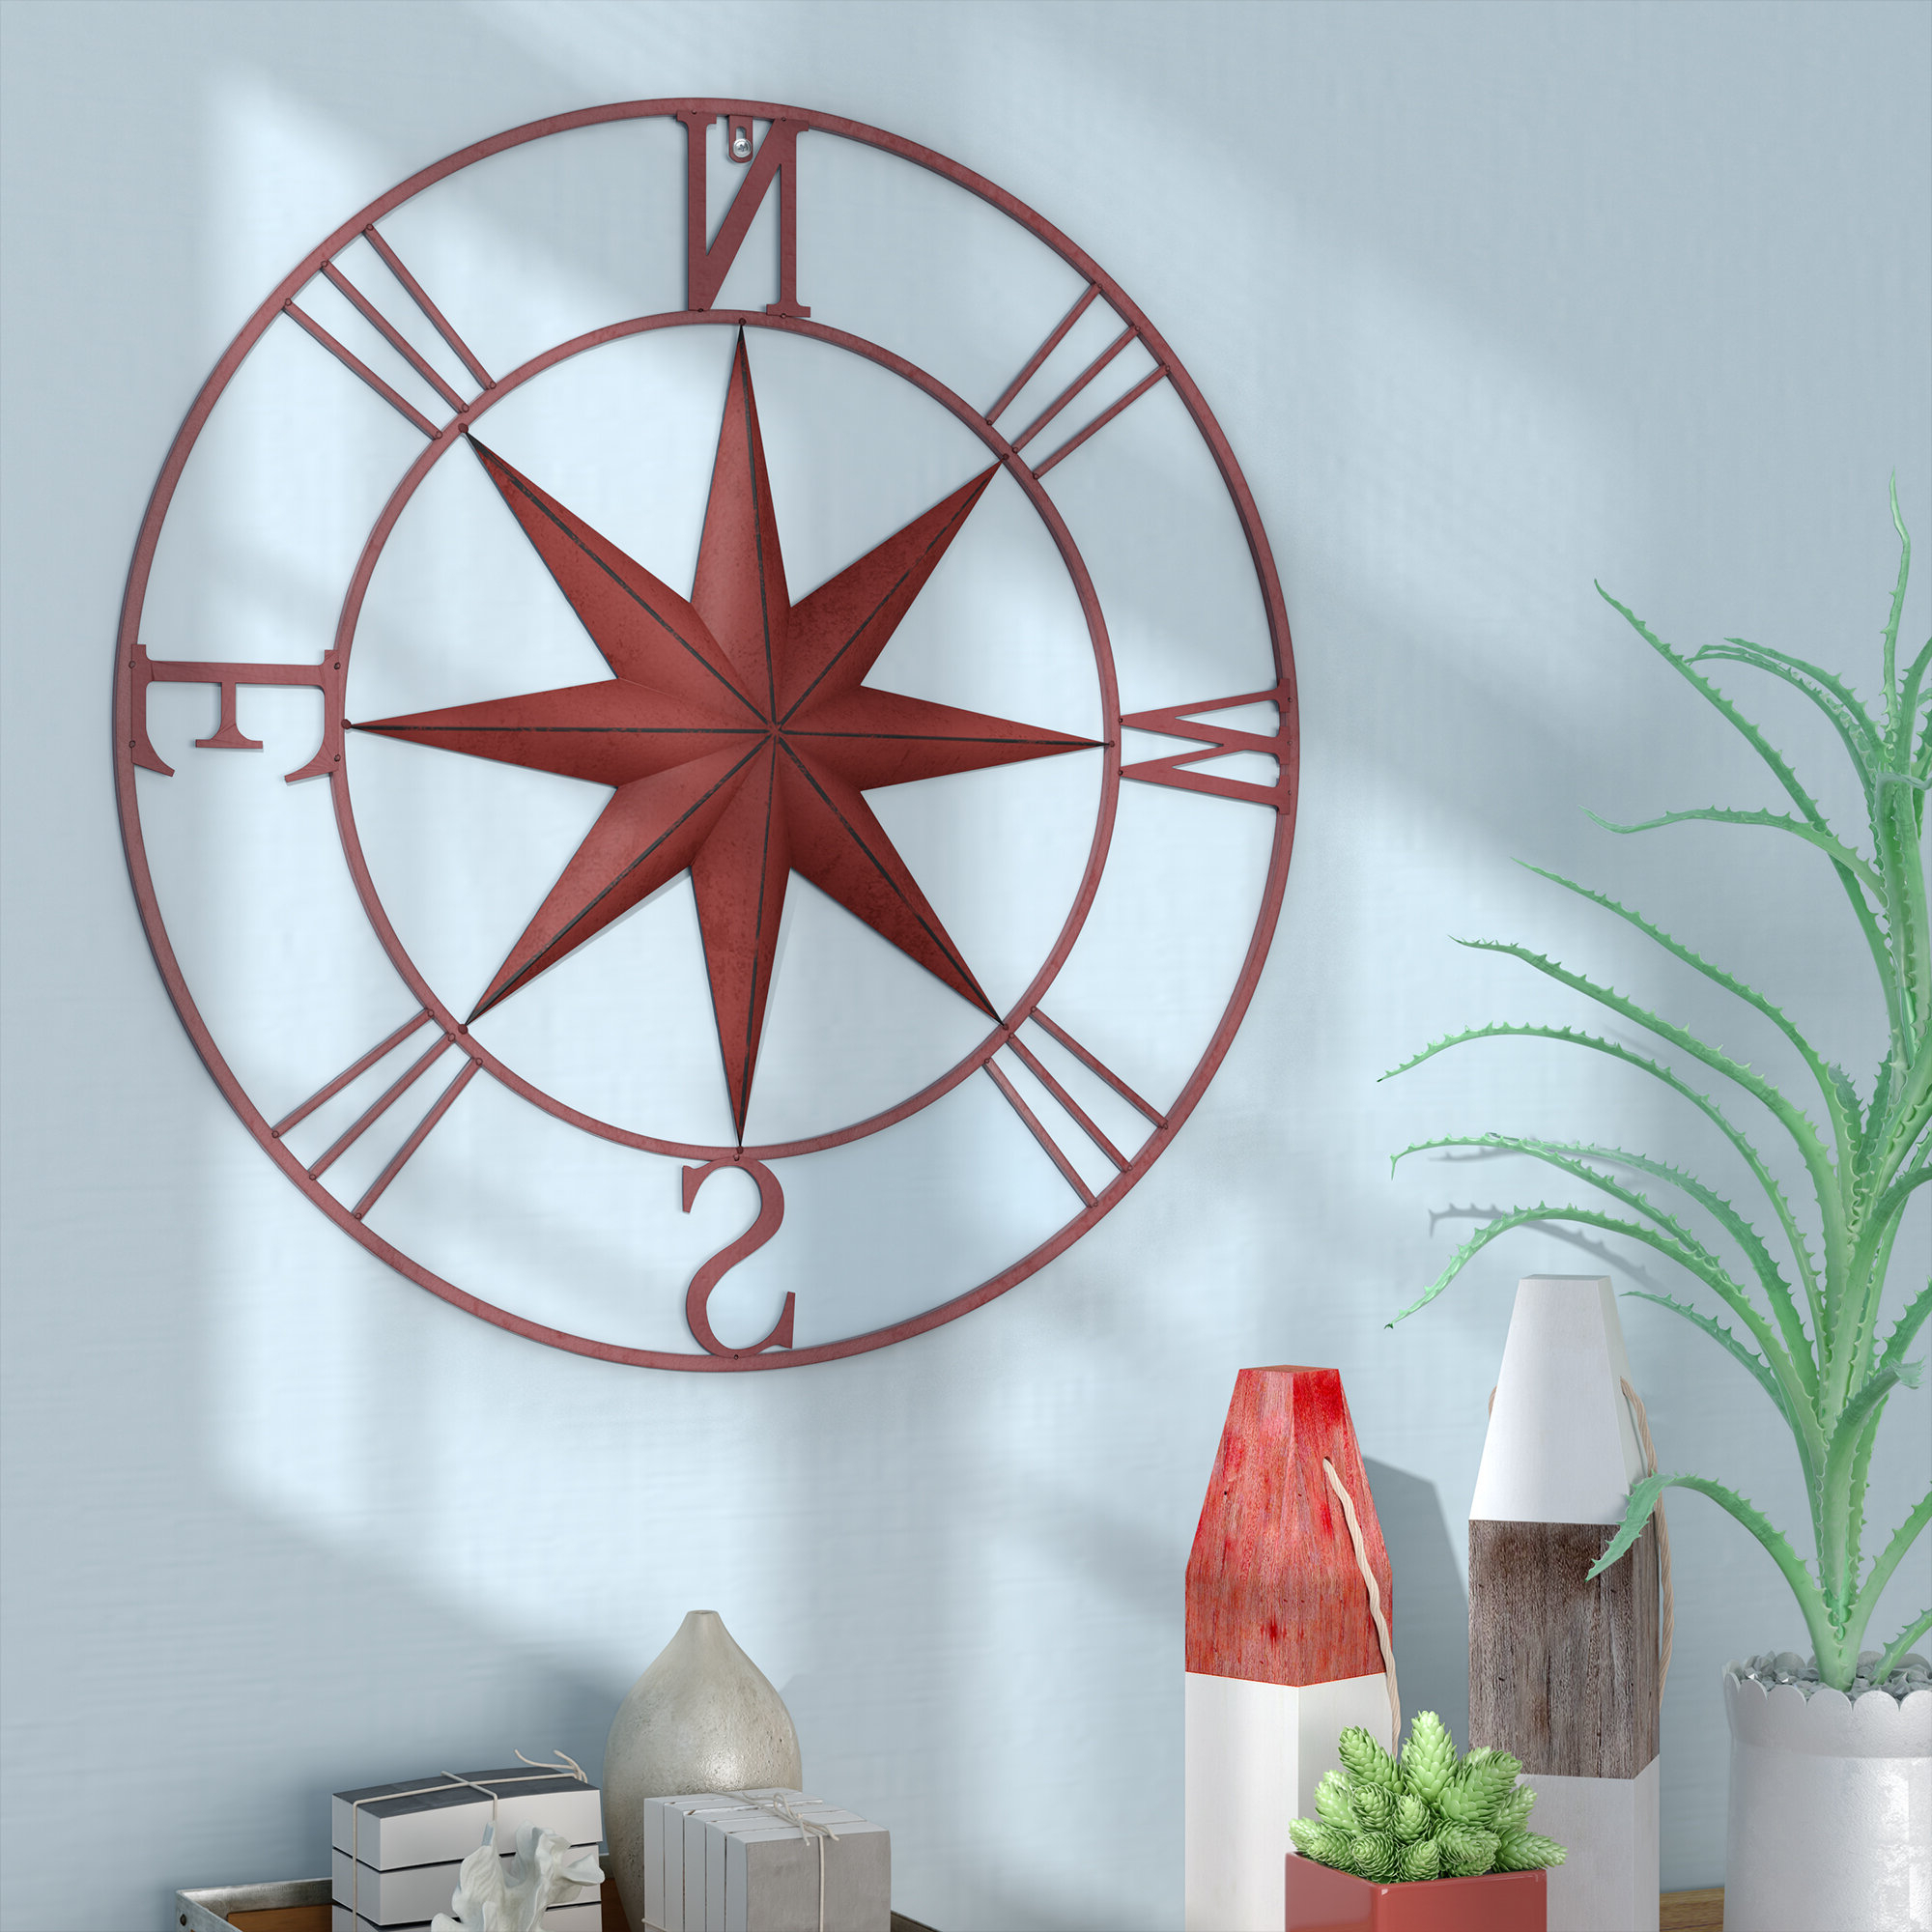 2020 Antique Compass Rose Wall Décor Regarding Compass Metal Wall Décor By Beachcrest Home (View 2 of 20)